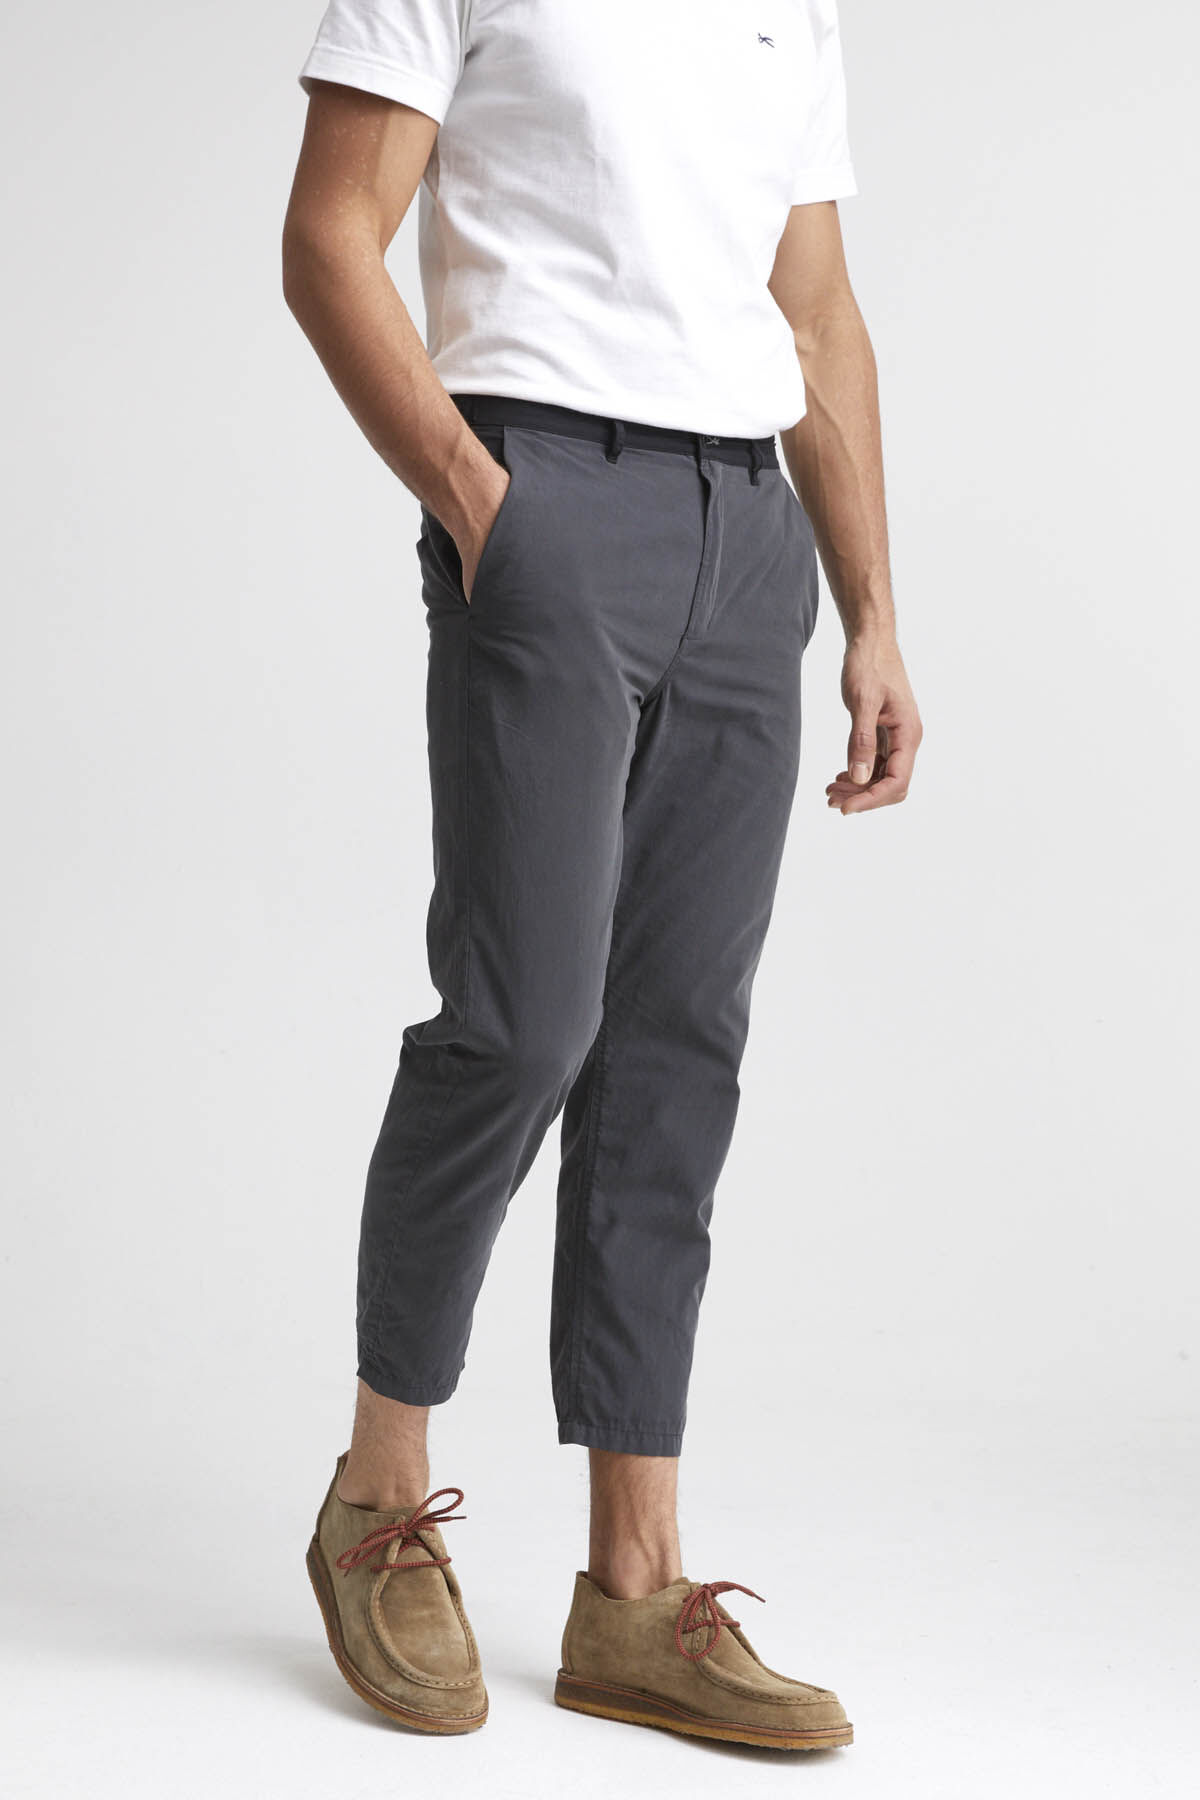 FORCE PANT Technical Blend Denim - Regular Fit